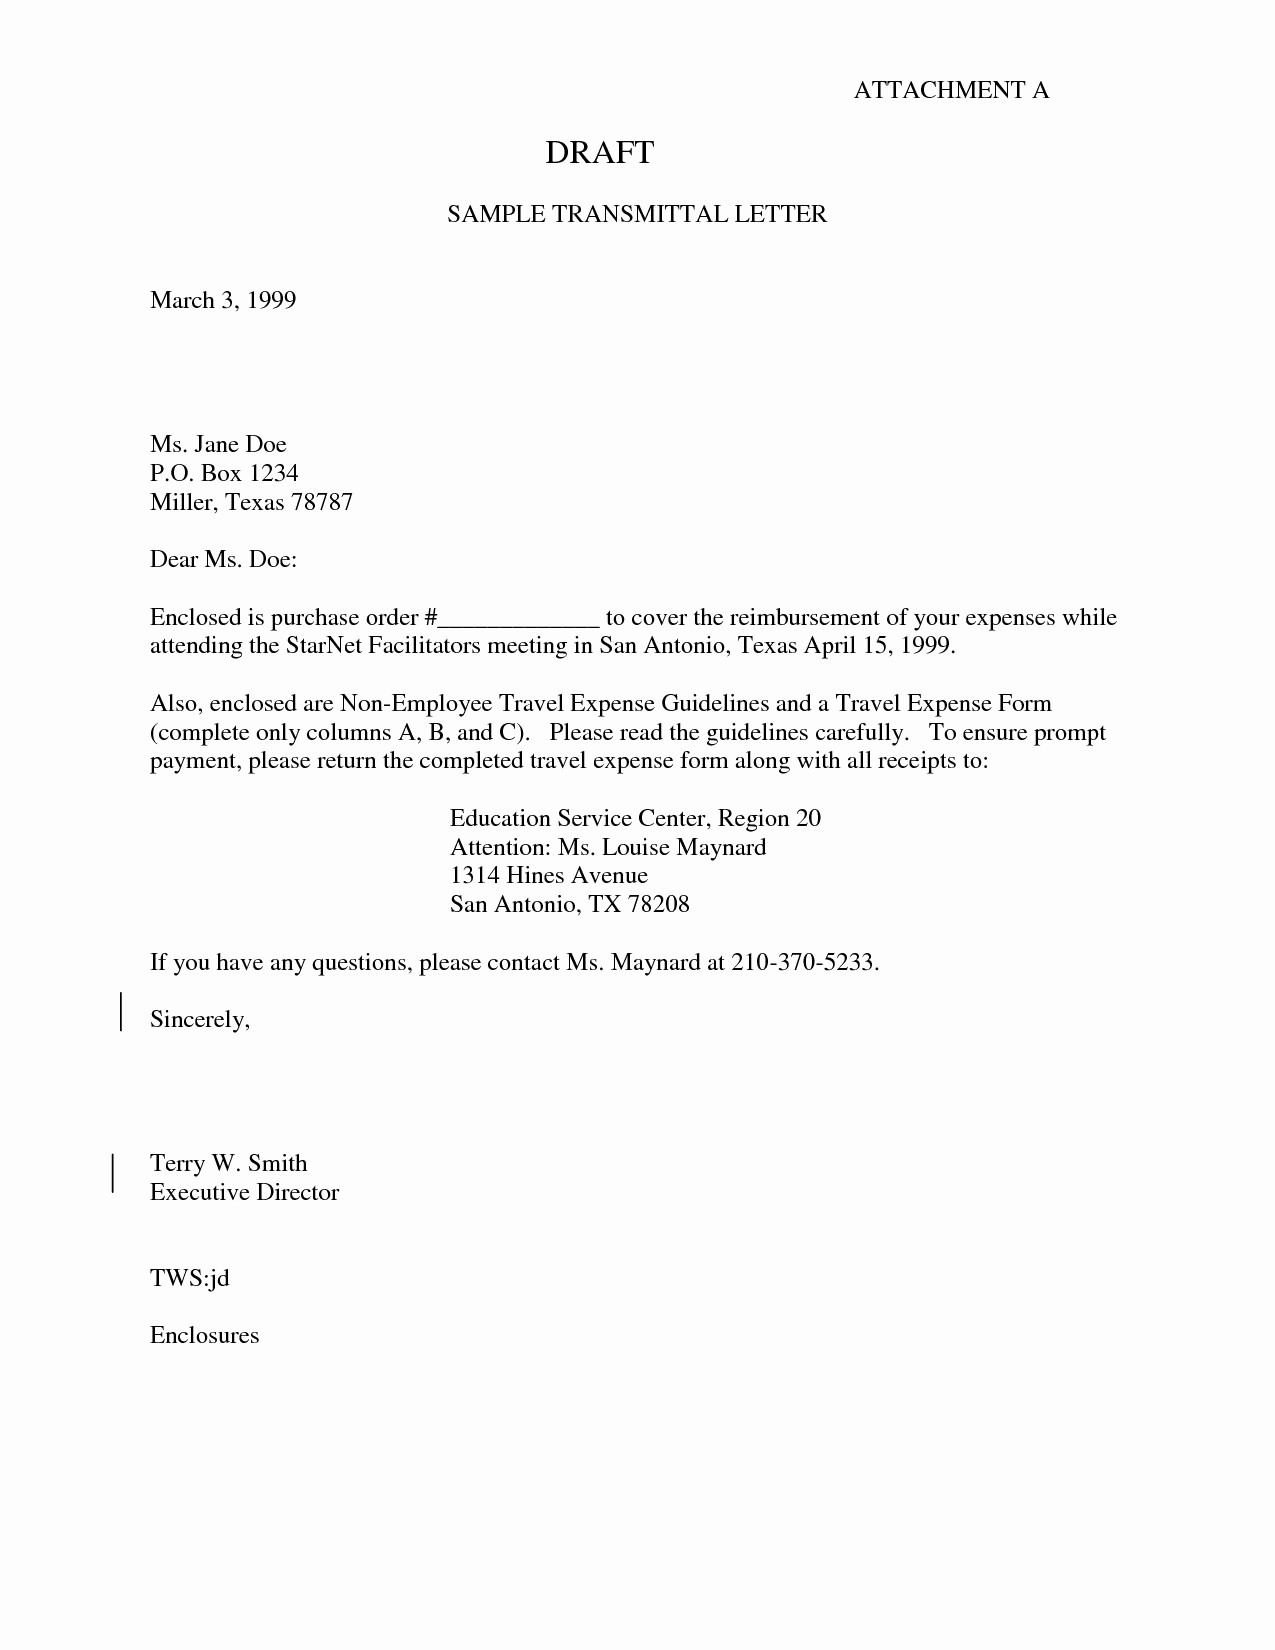 Sample Of Letter Of Transmittal Fresh Transmittal Cover Letter Template Samples